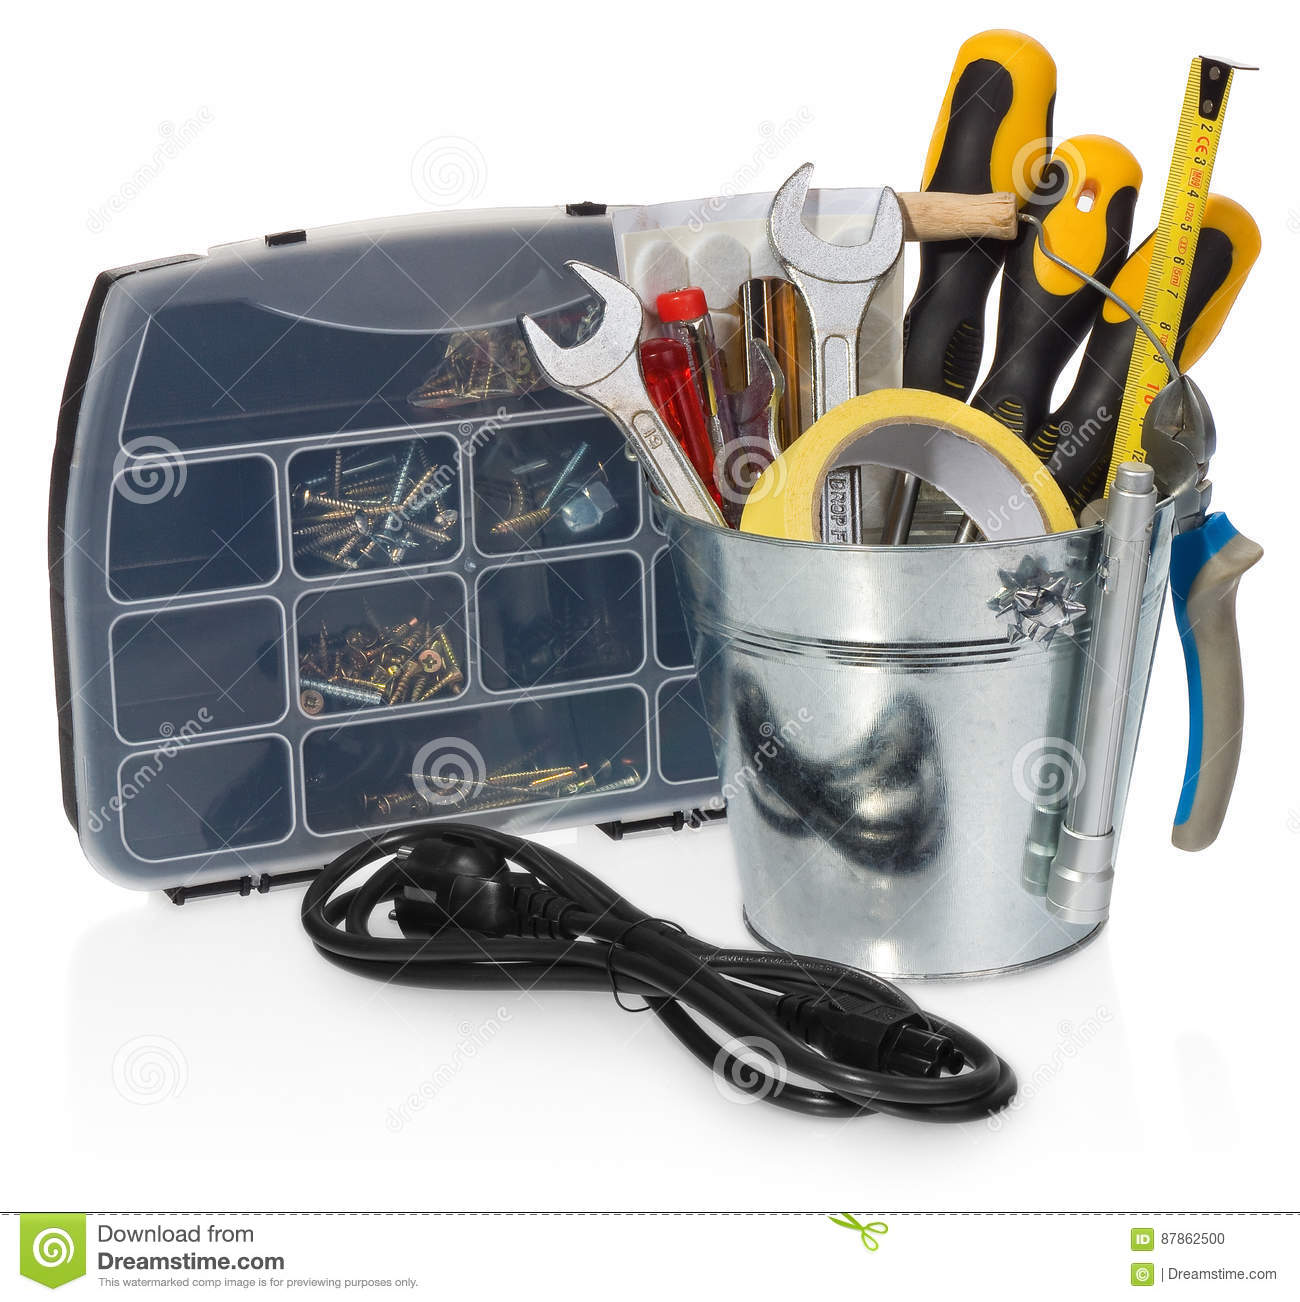 Handyman Tool Set: Screwdrivers, Wrenches, Tape, Pliers, Measuring